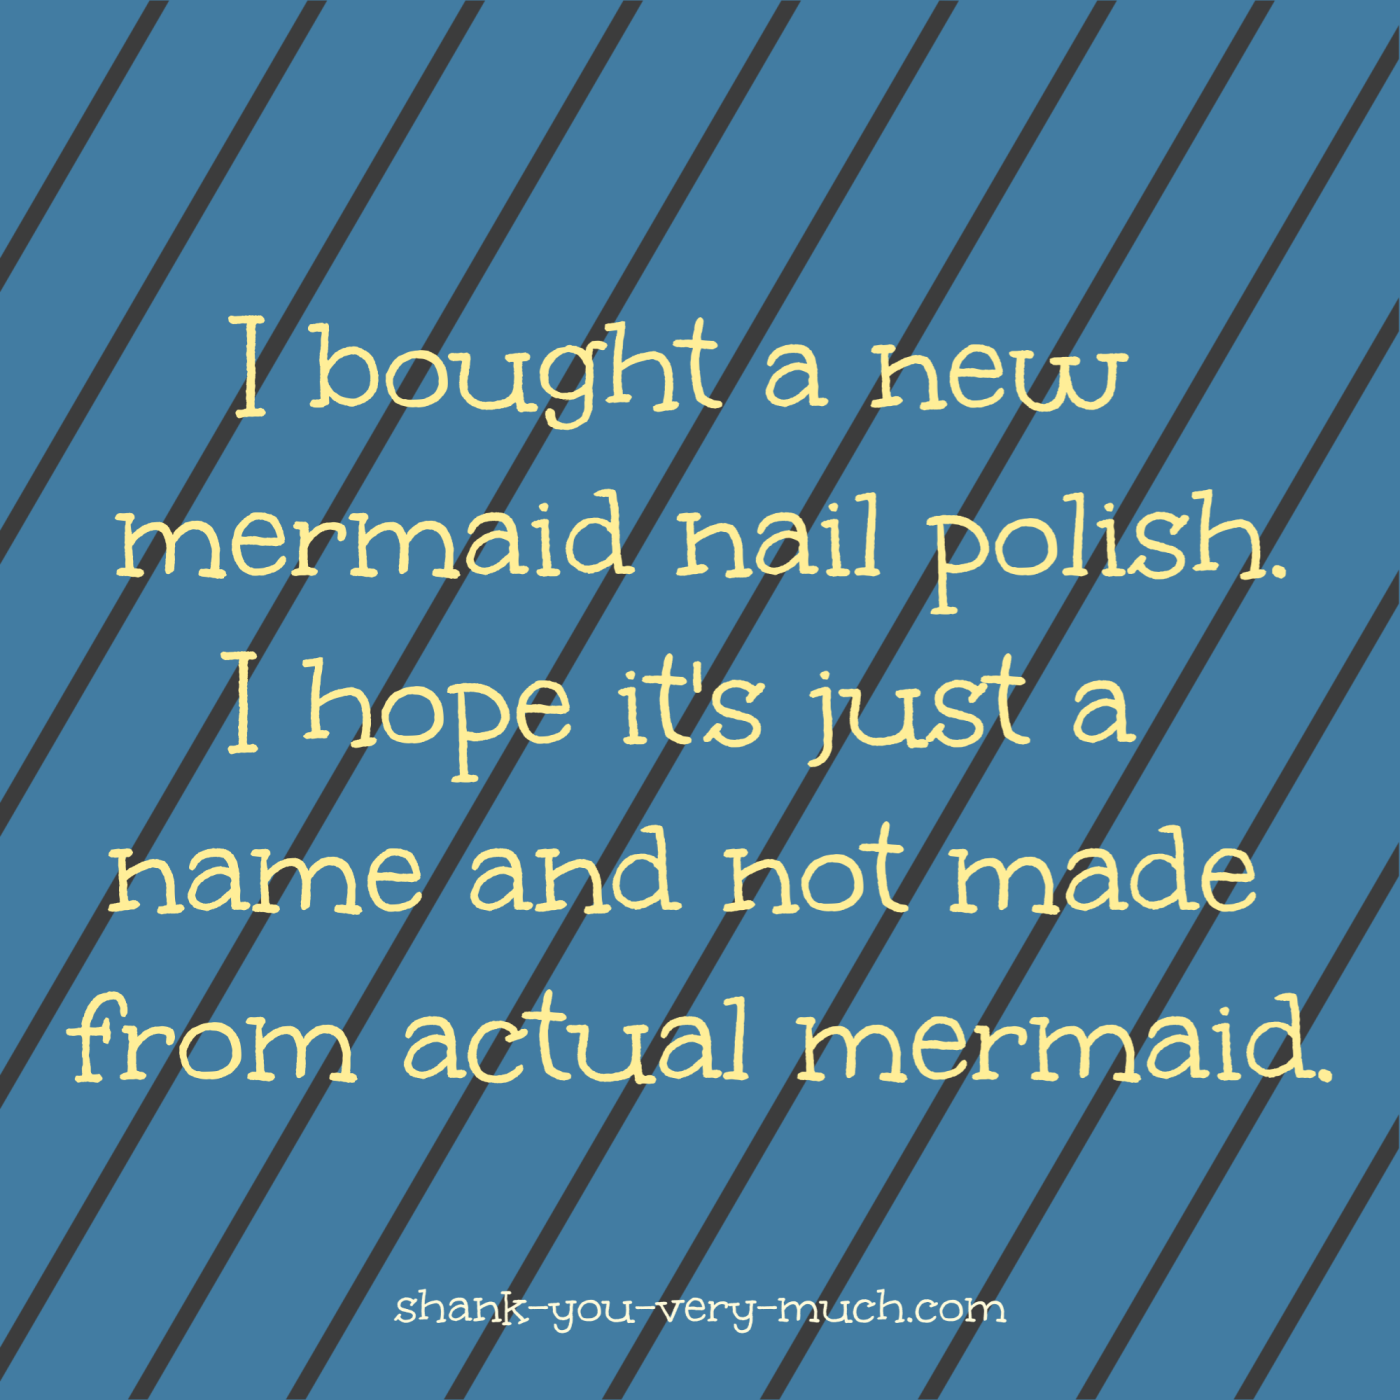 A text box that reads 'I bought a new mermaid nail polish. I hope it's just a name and not made from actual mermaid.'